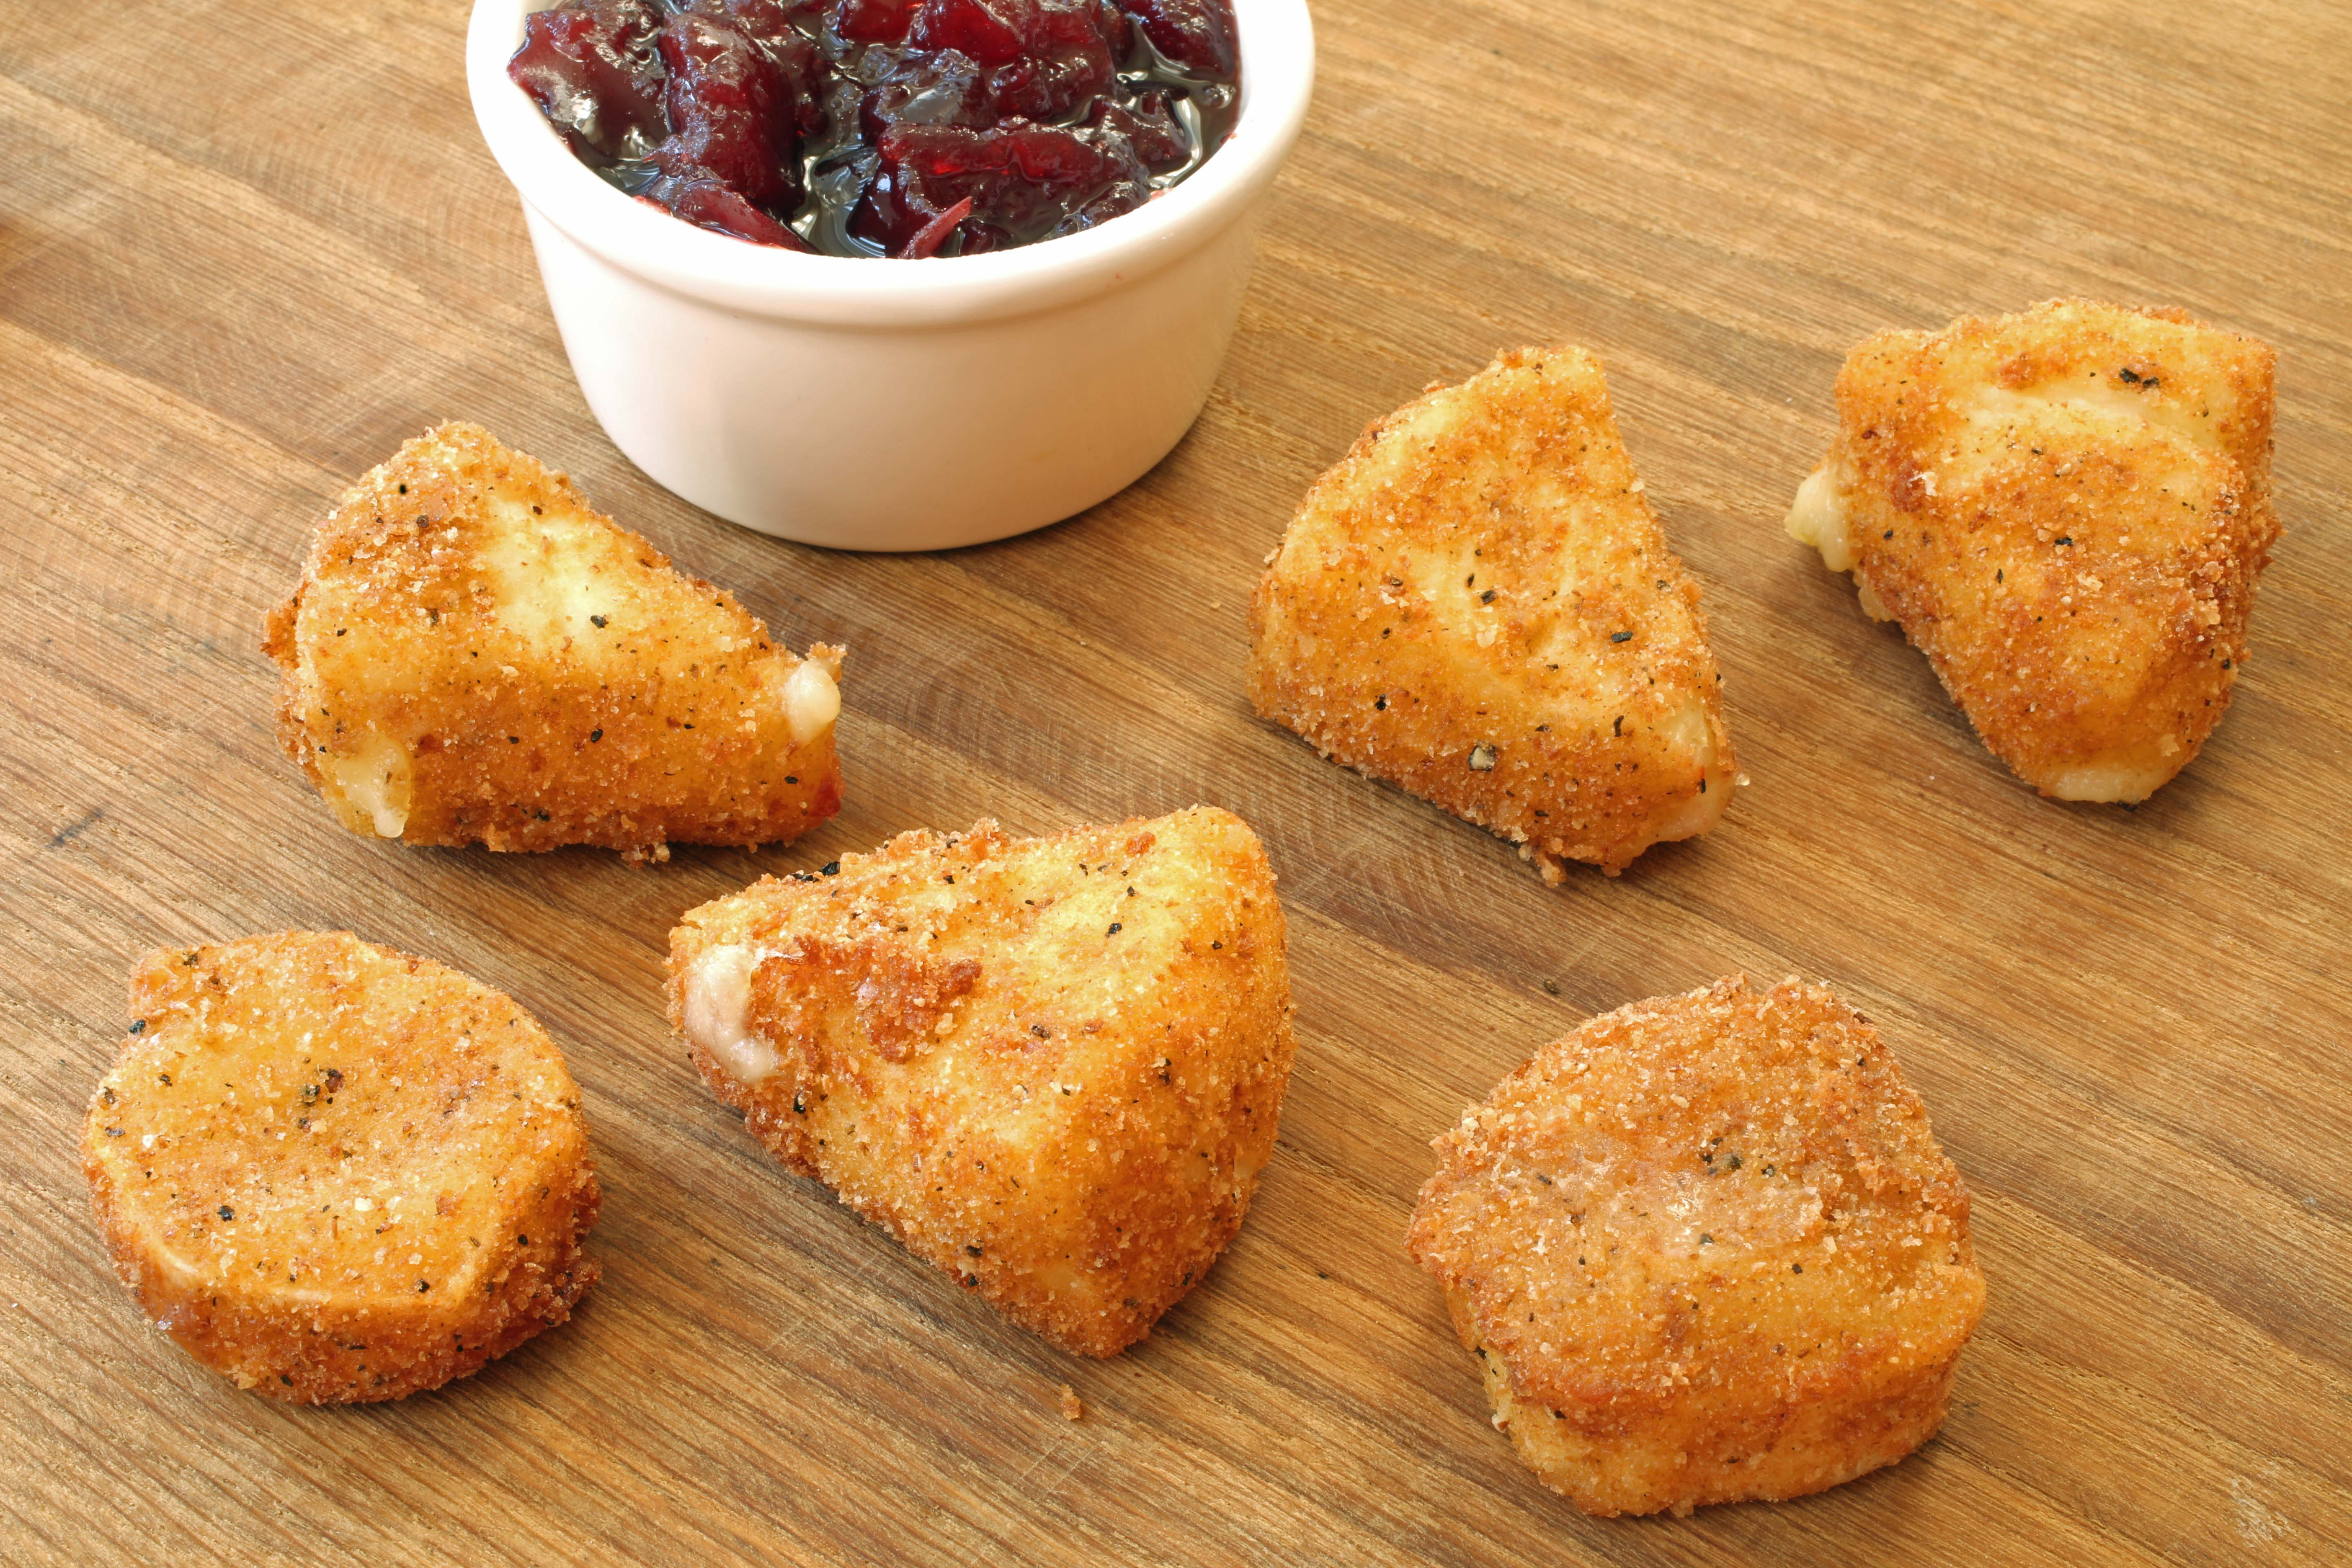 How To Make Fried Cheese - The Culinary Exchange